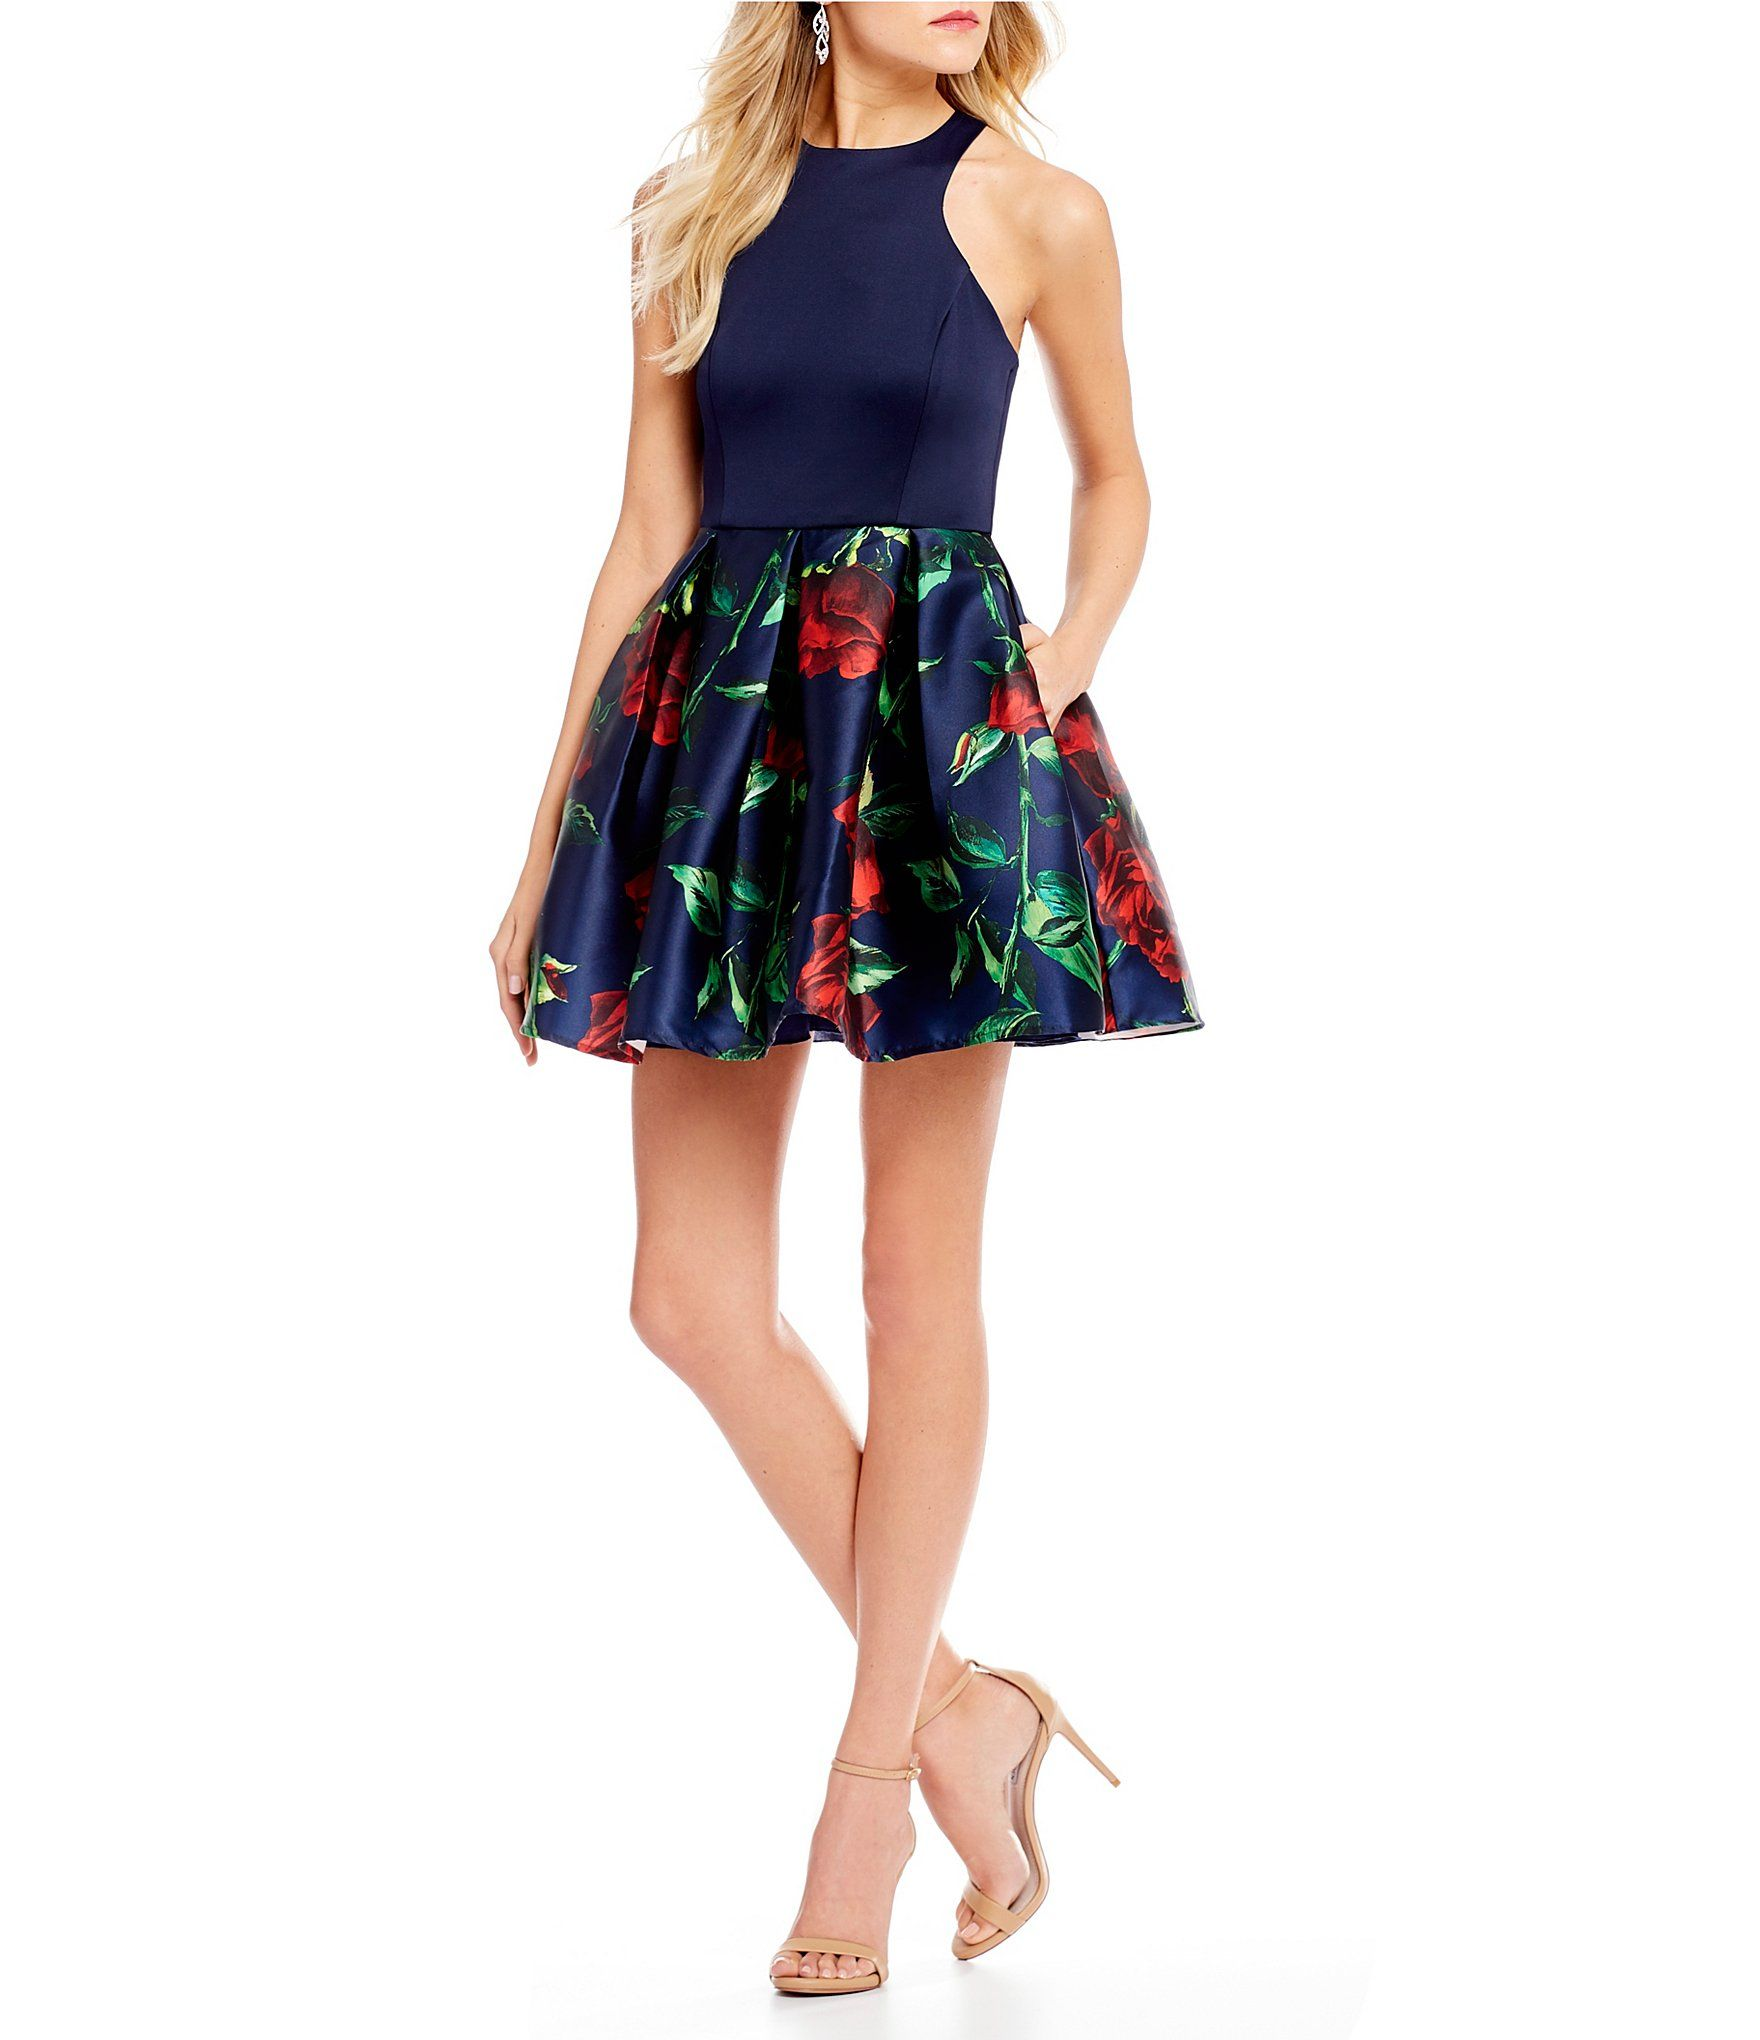 683adca5b4 Shop for Teeze Me Racer Neck Floral Print Skirt Fit-And-Flare Dress at  Dillards.com. Visit Dillards.com to find clothing